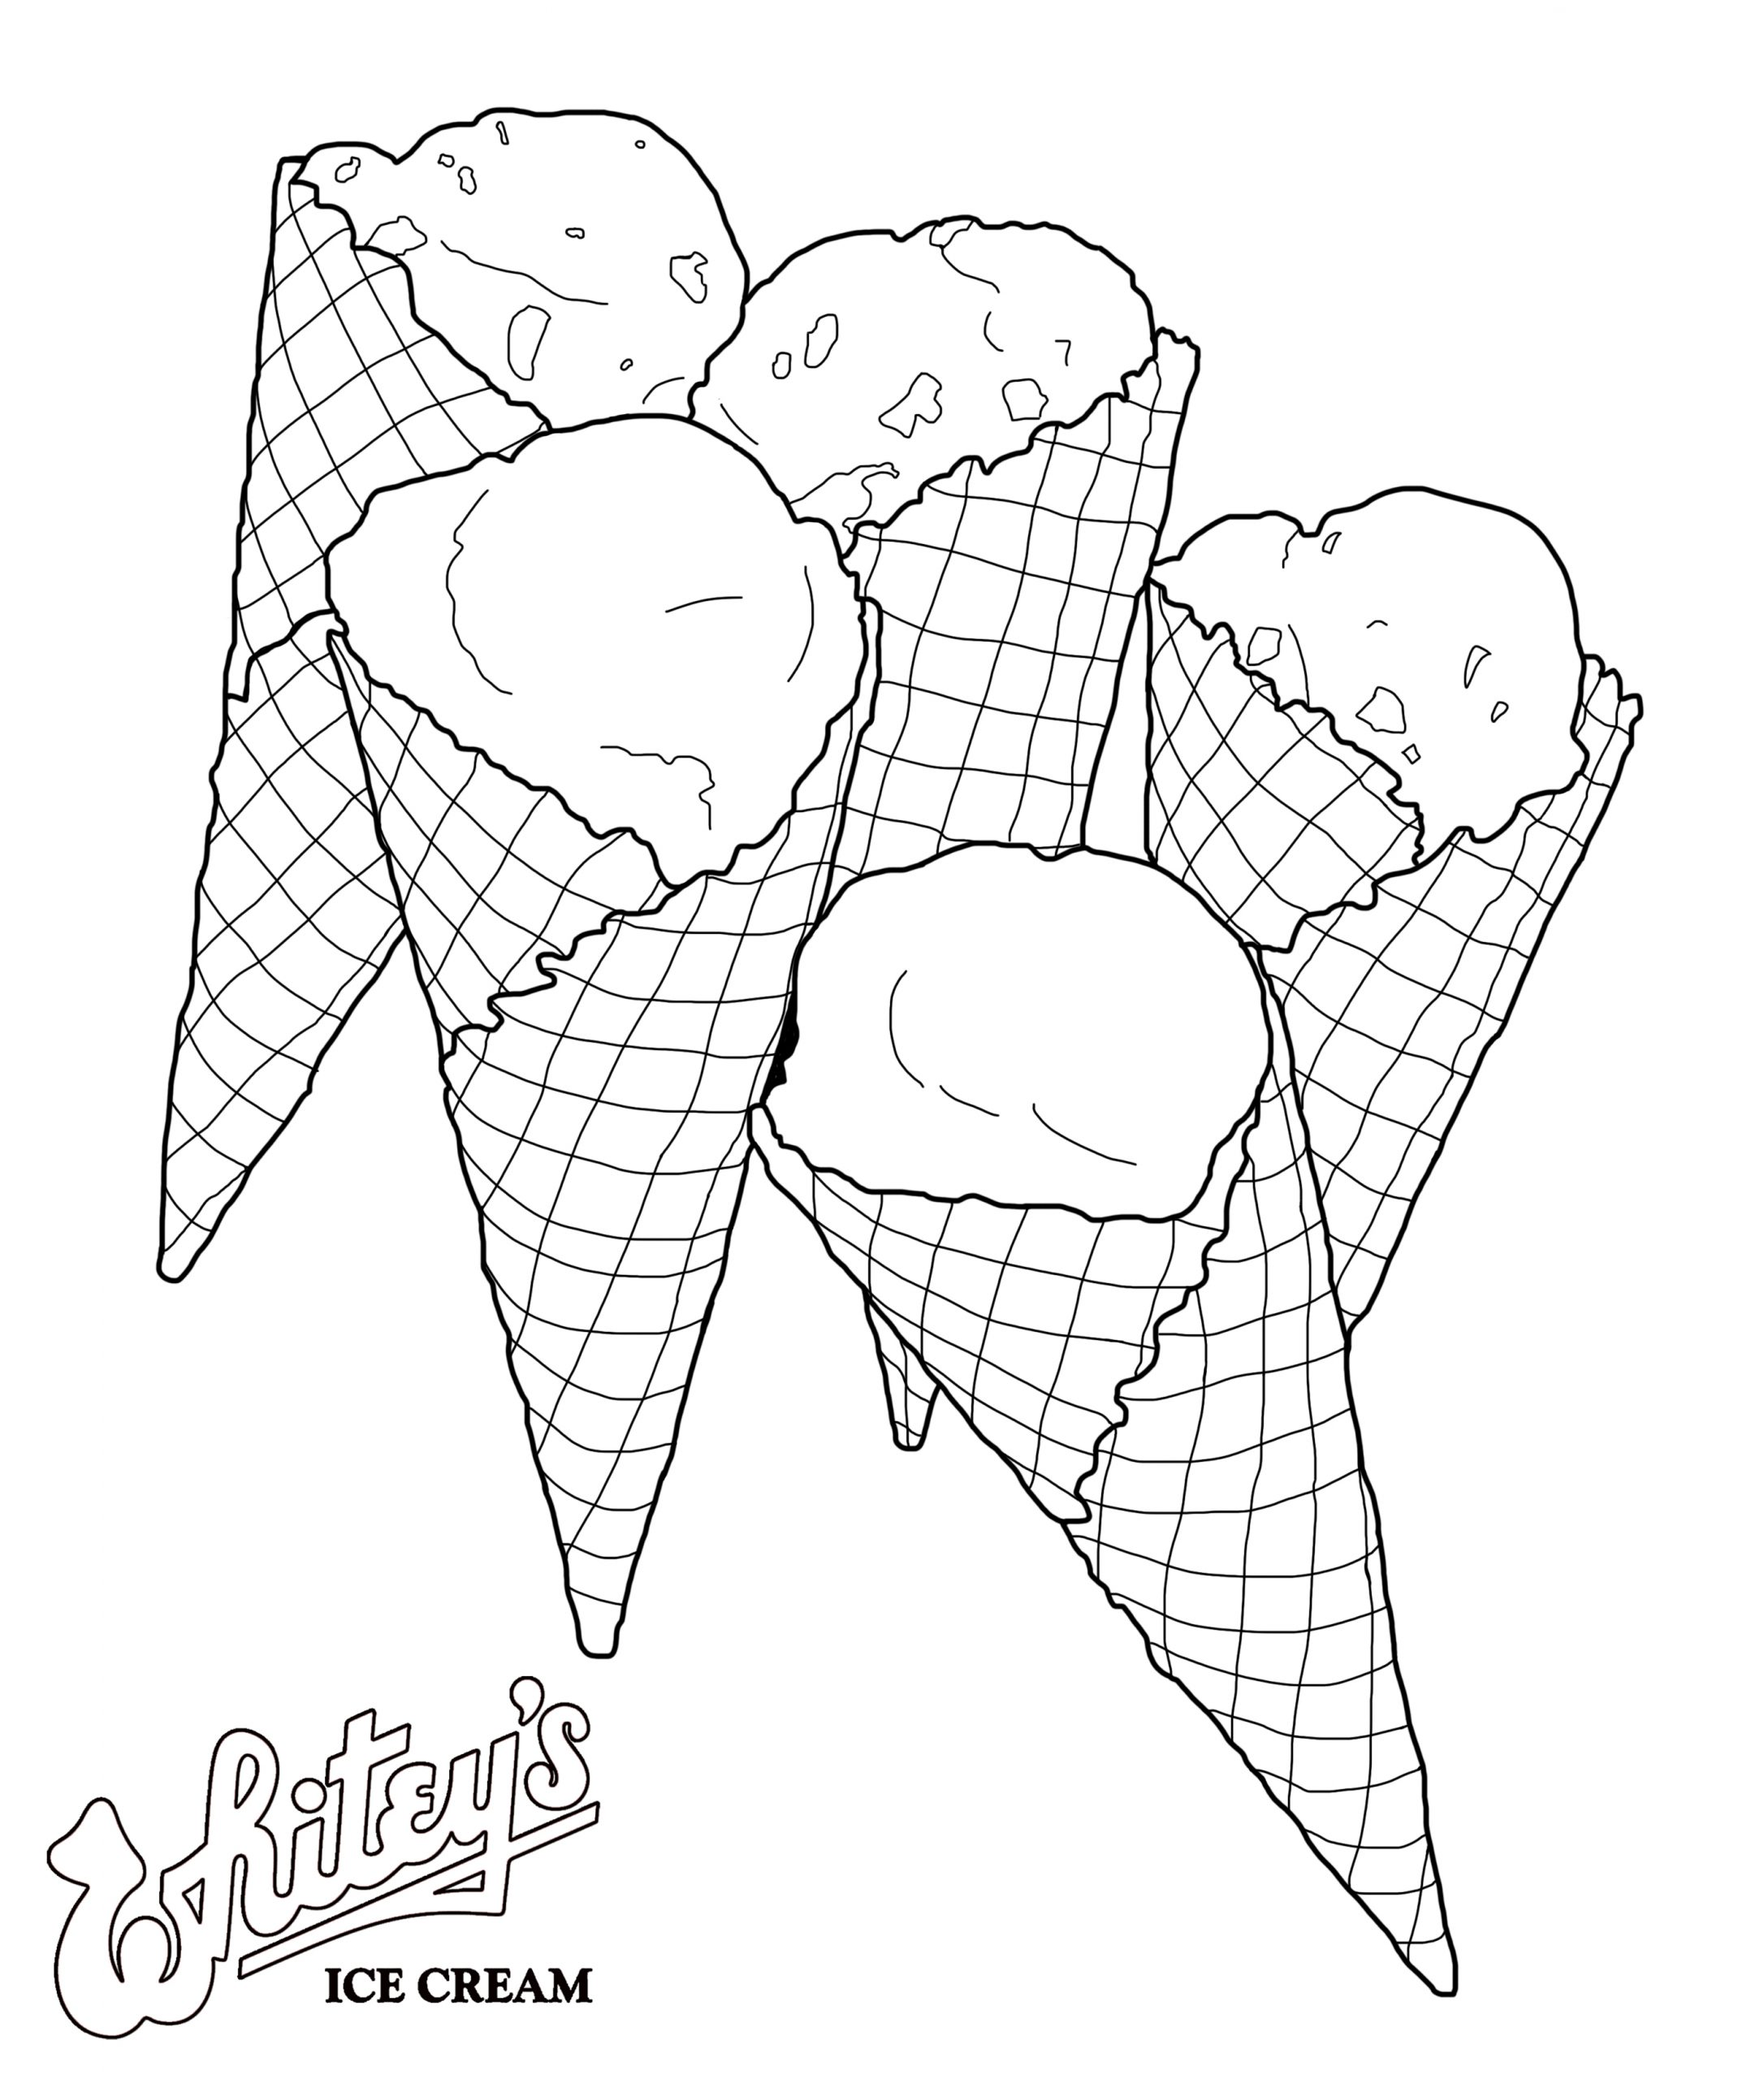 Whitey's Ice Cream Cones